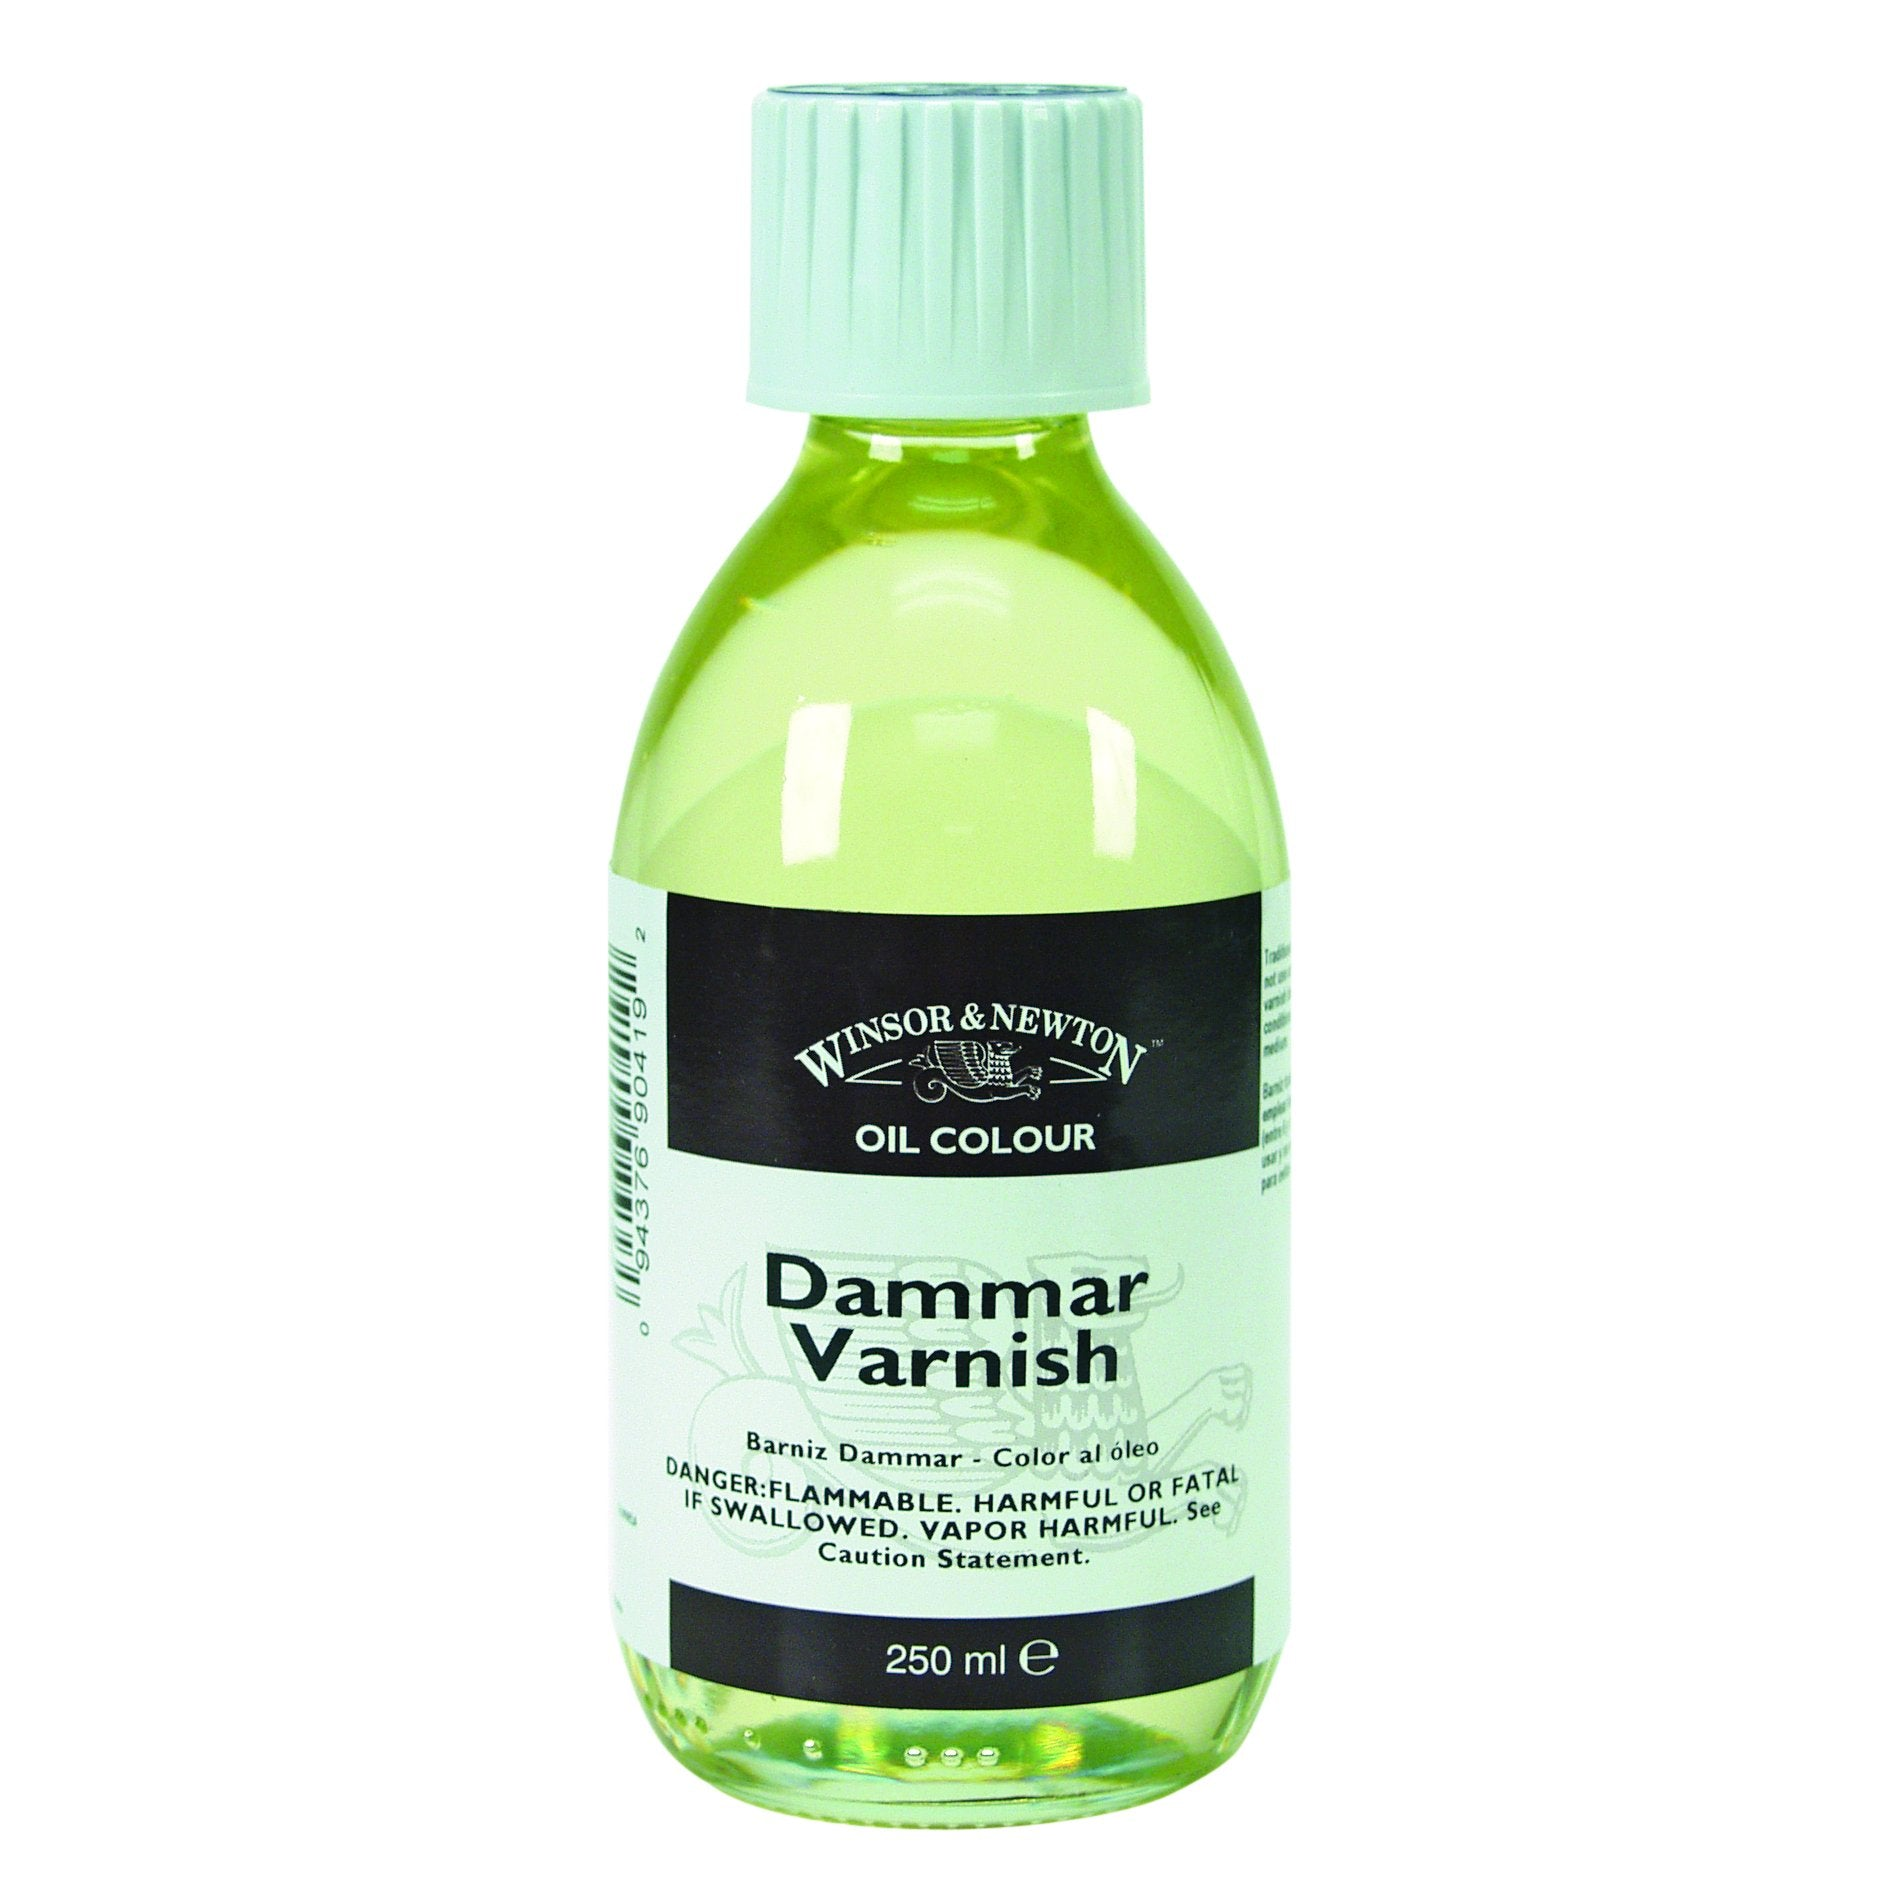 Winsor & Newton Dammar Varnish, 8.4 oz.